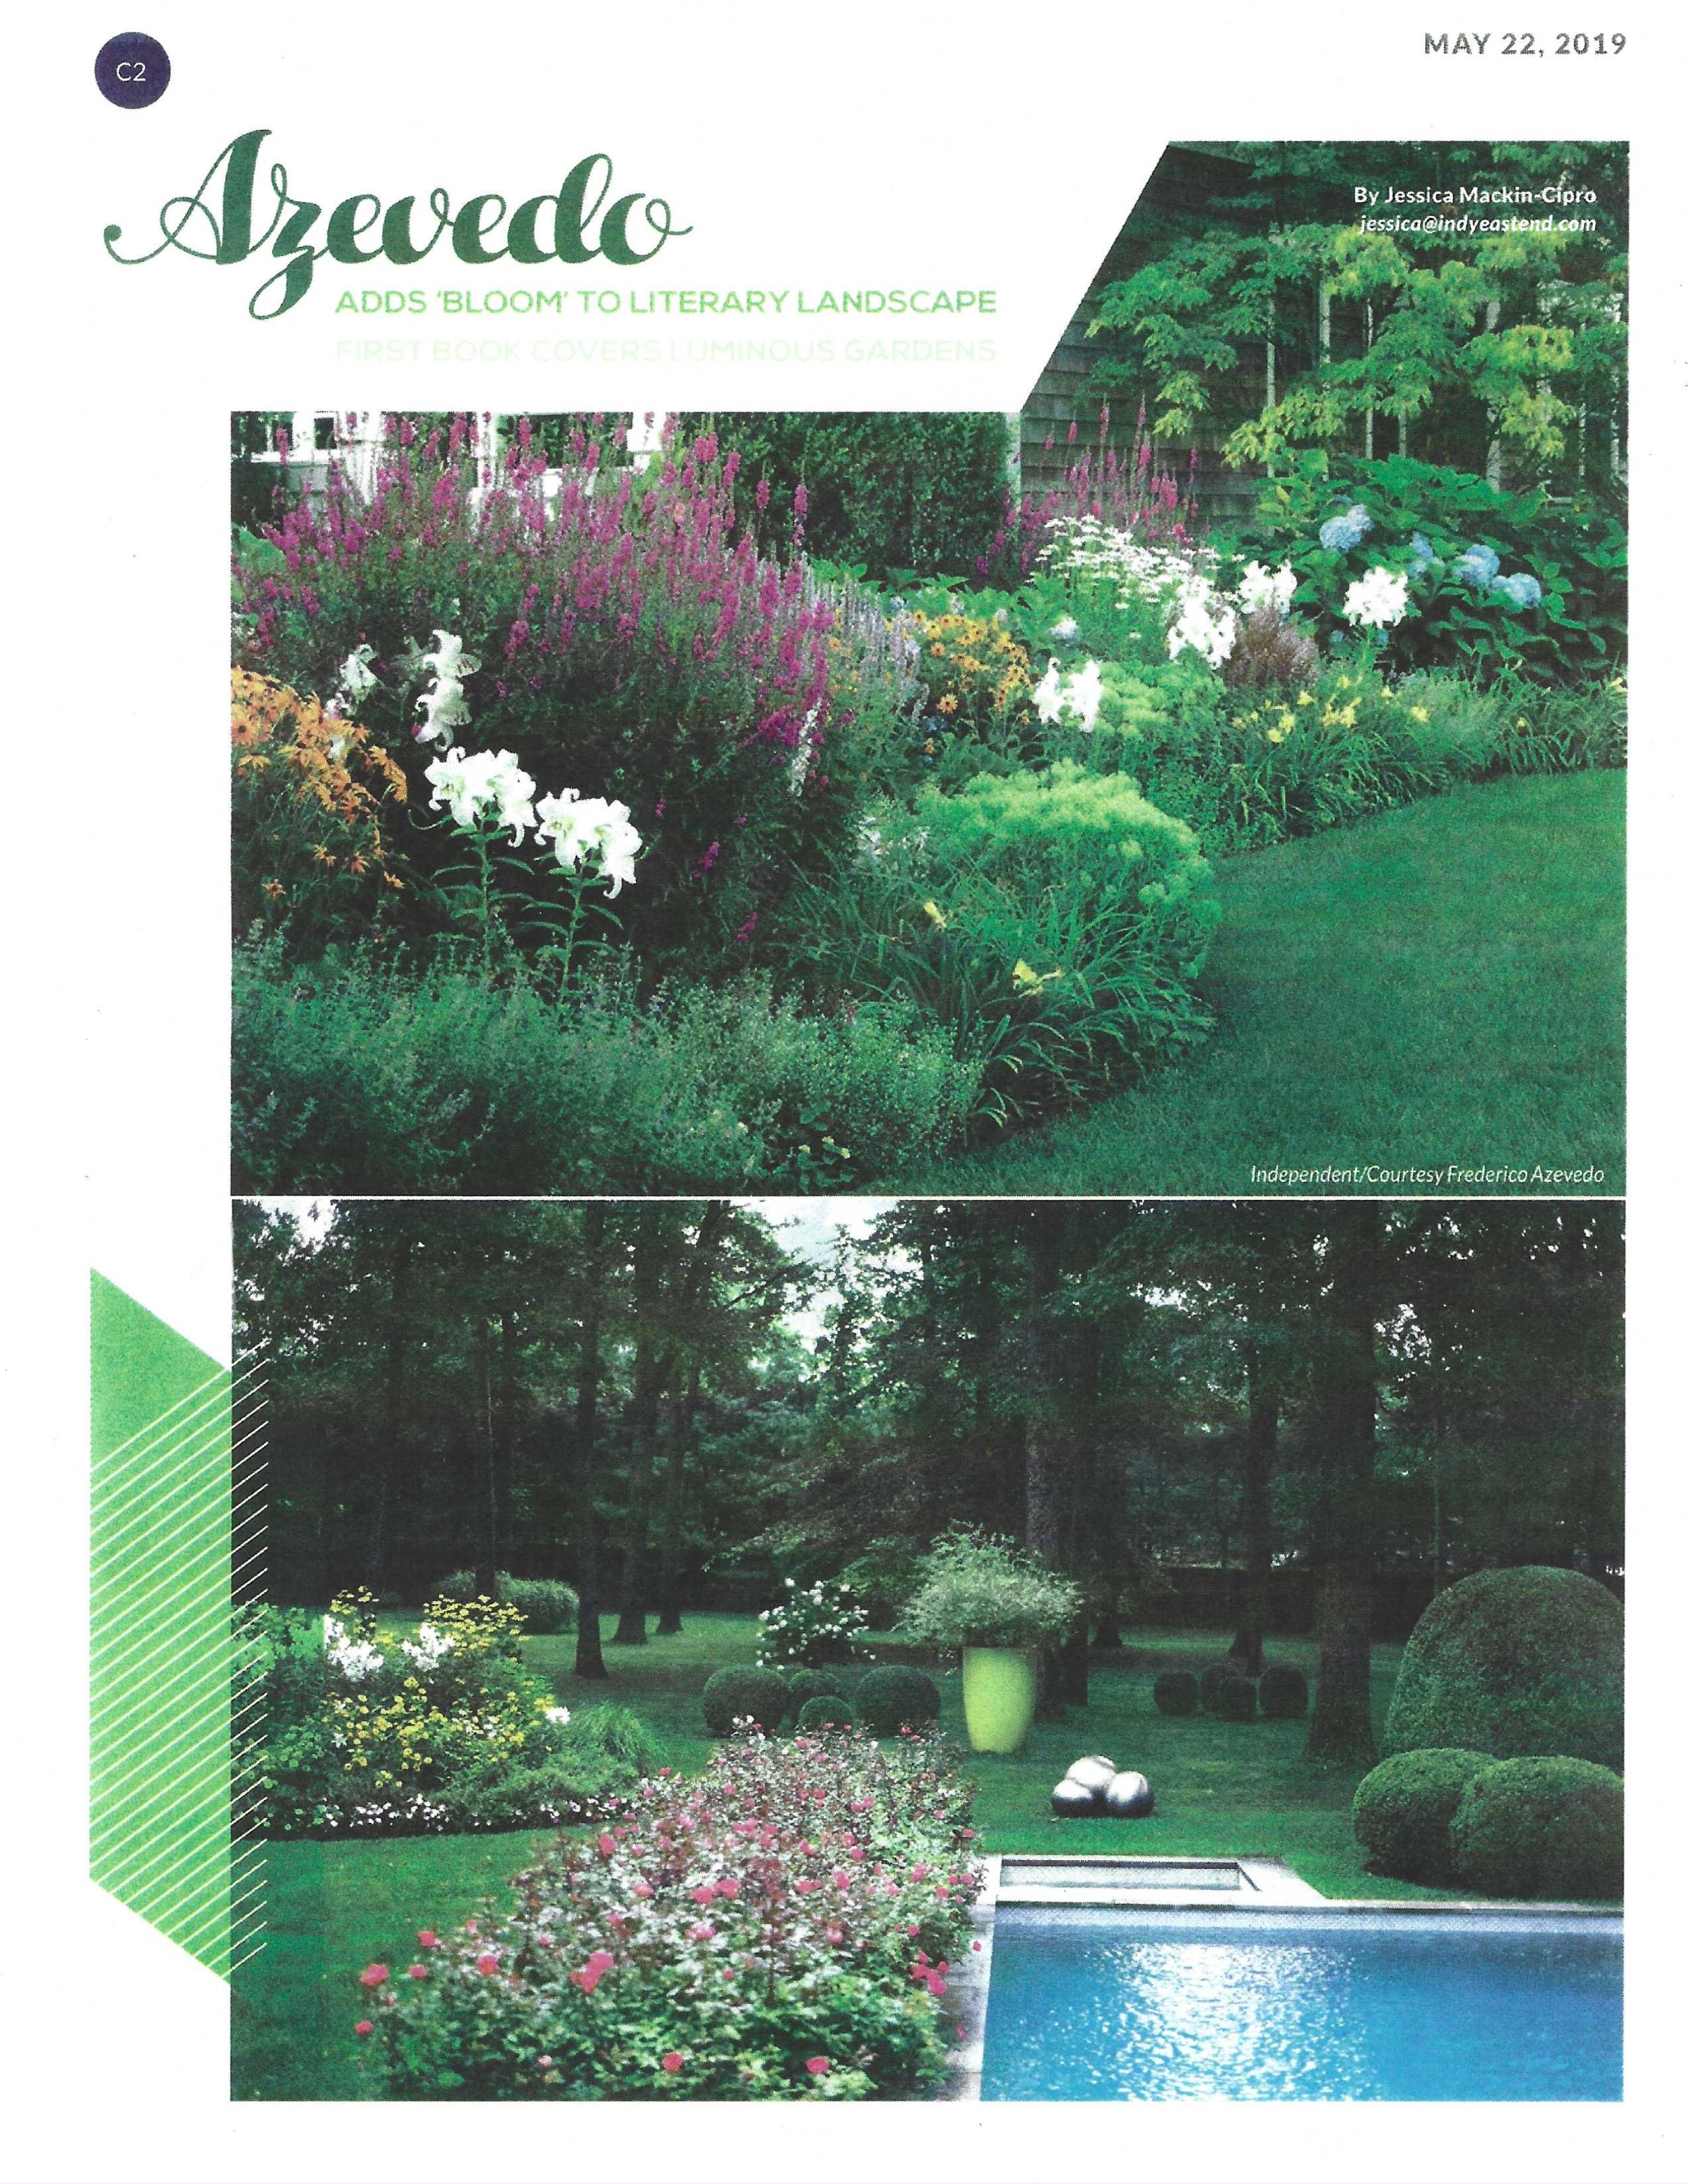 63 The Independent - Home & Garden_May 2019 3.jpg